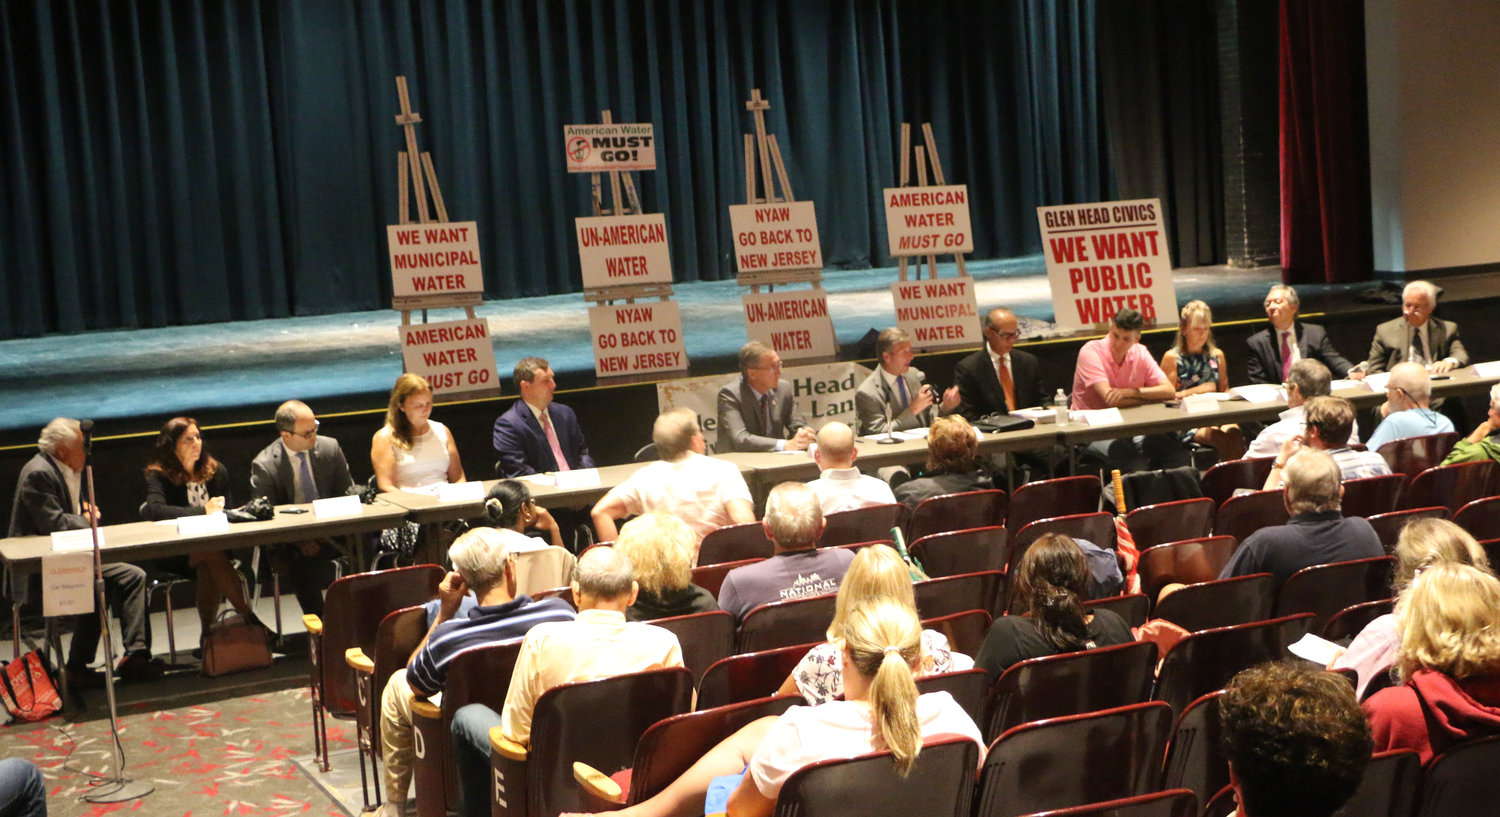 Public water advocates from across the North Shore said they hope the New York State Public Service Commission determines that a switch to public water would be in customers' best interests.